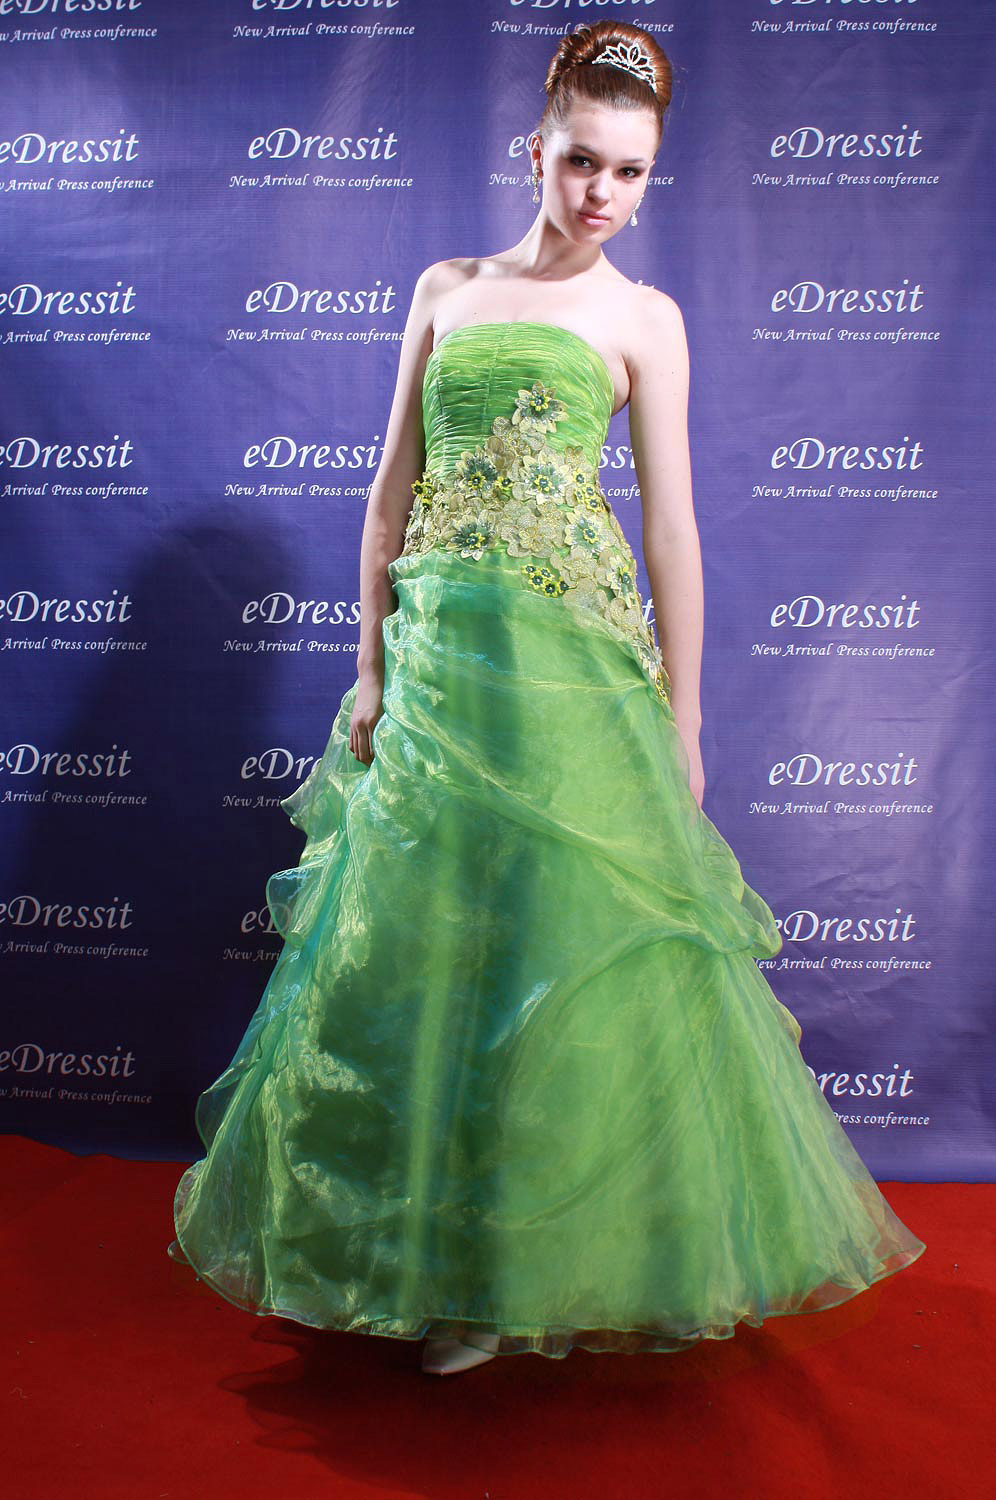 50% ON SALE!  eDressit Prom Gown+free petticoat (01080204)